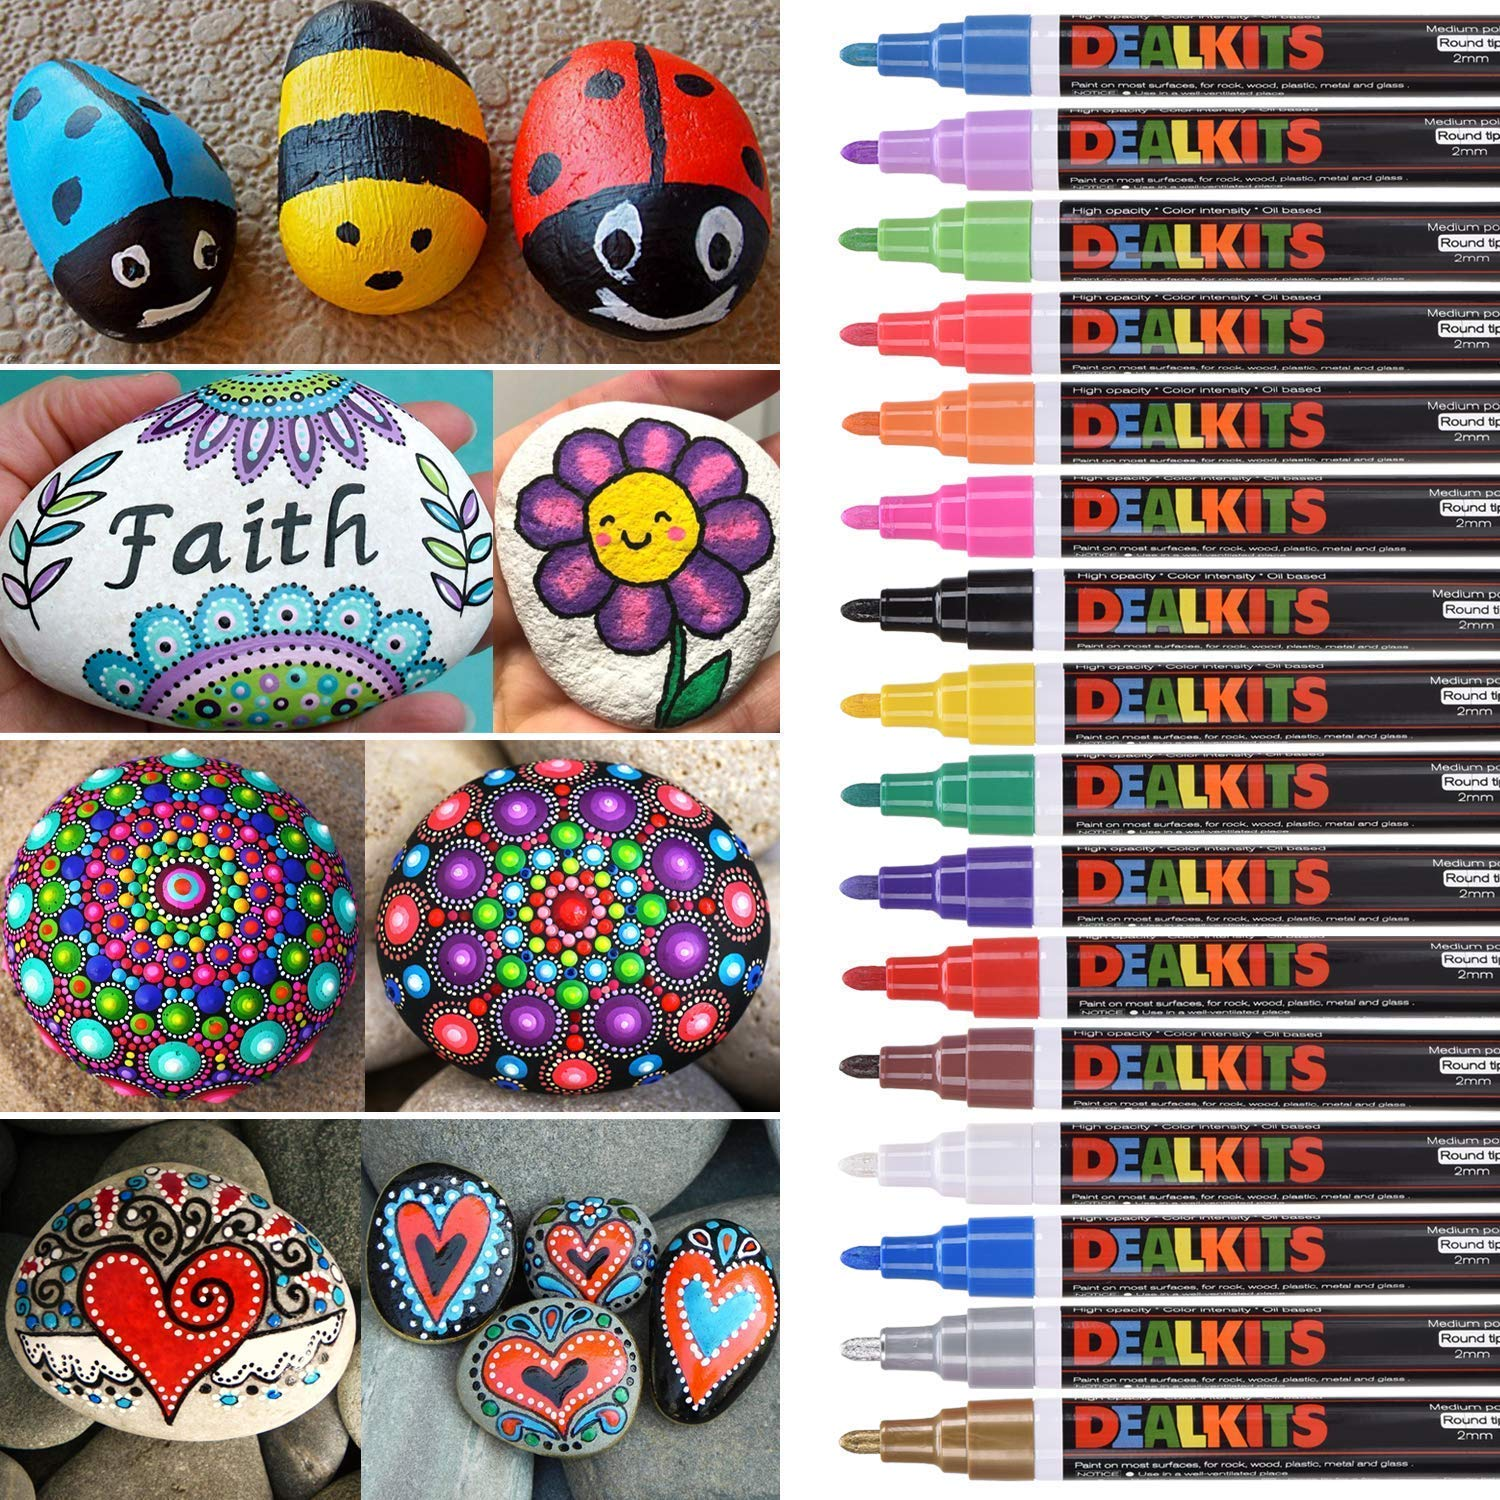 DealKits 16 Colors Paint Marker Pens for Rock Painting [Oil-Based] [Quick Dry] [Water Resistant] for Art Rock Painting Wood Glass Metal and Ceramic, Medium Tip by Browill